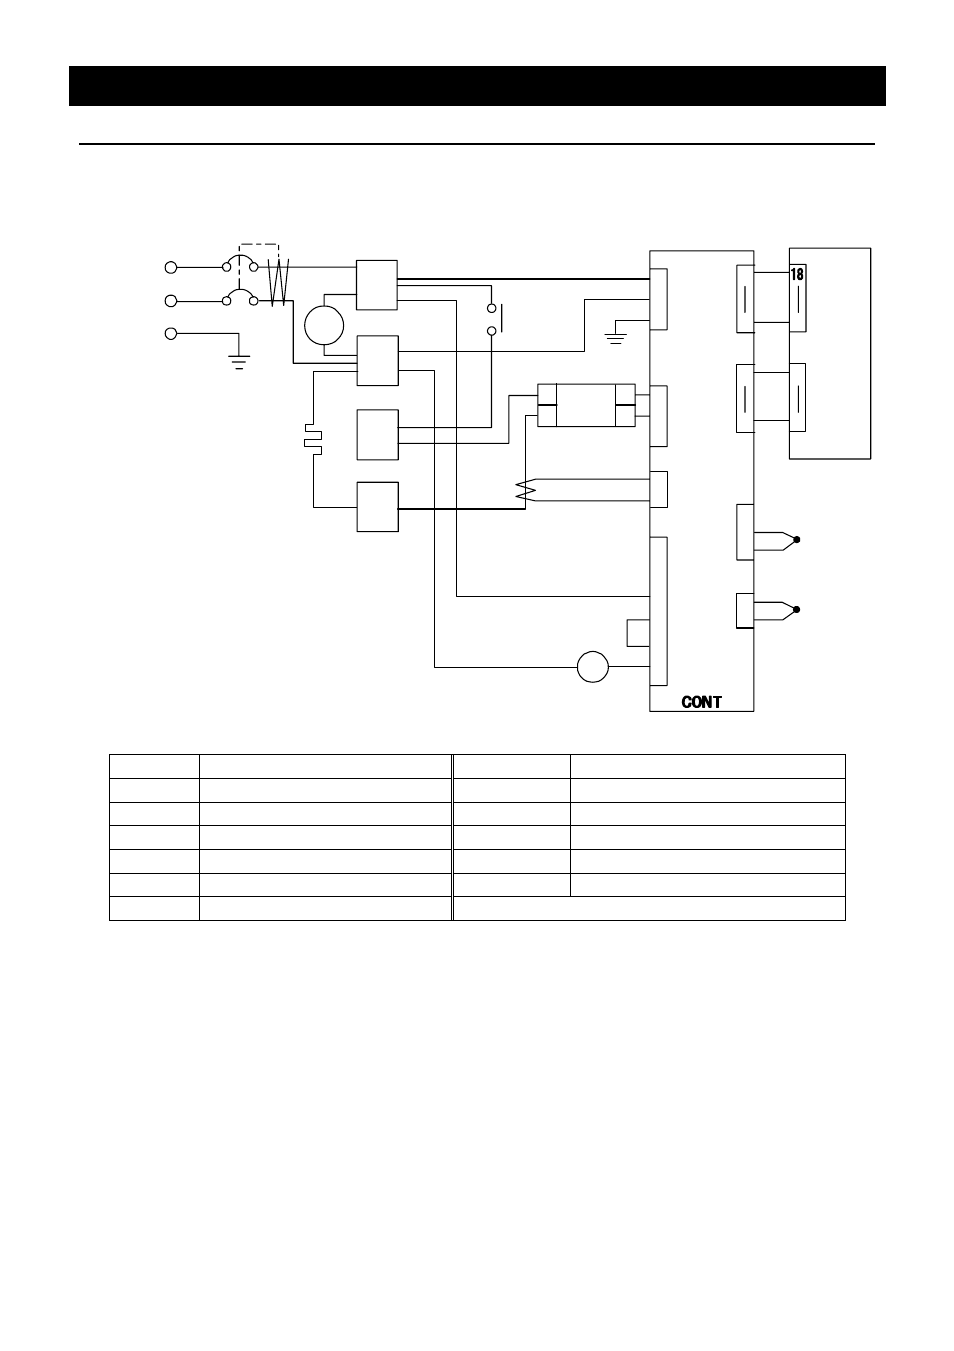 hight resolution of wiring diagram pio elb ac100v hth2 th1 yamato scientific dkn 912 constant temperature drying oven user manual page 44 50